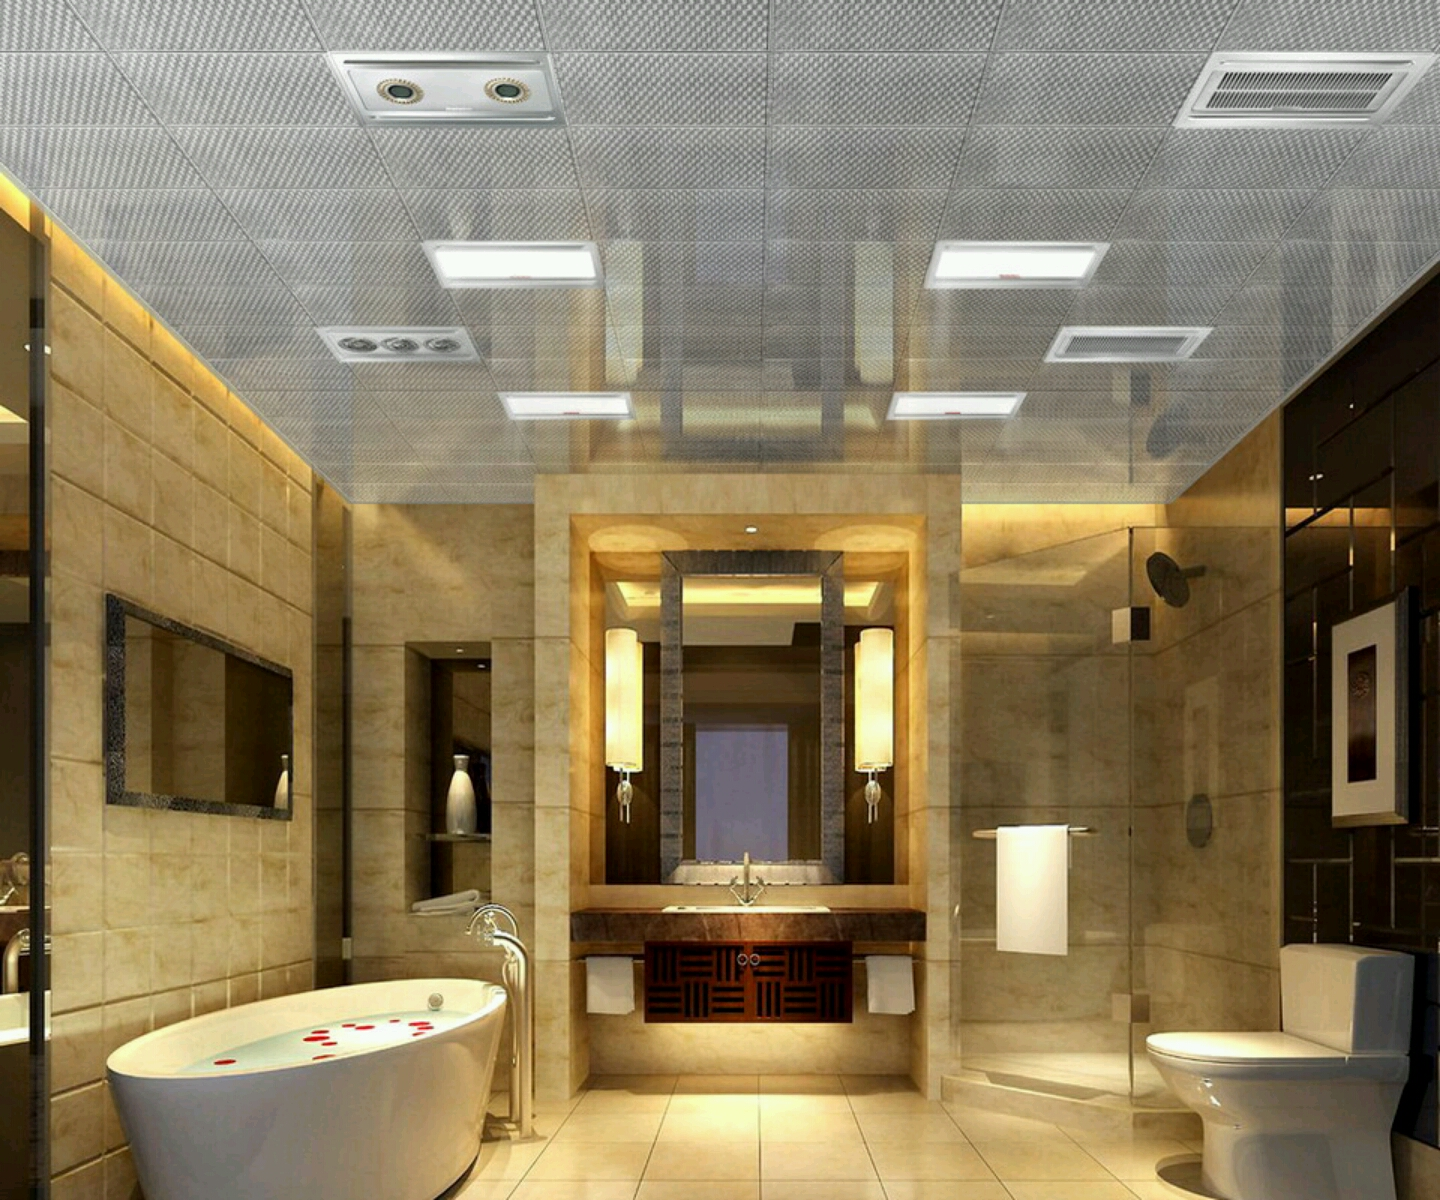 New home designs latest luxury bathrooms designs ideas for Home design ideas bathroom